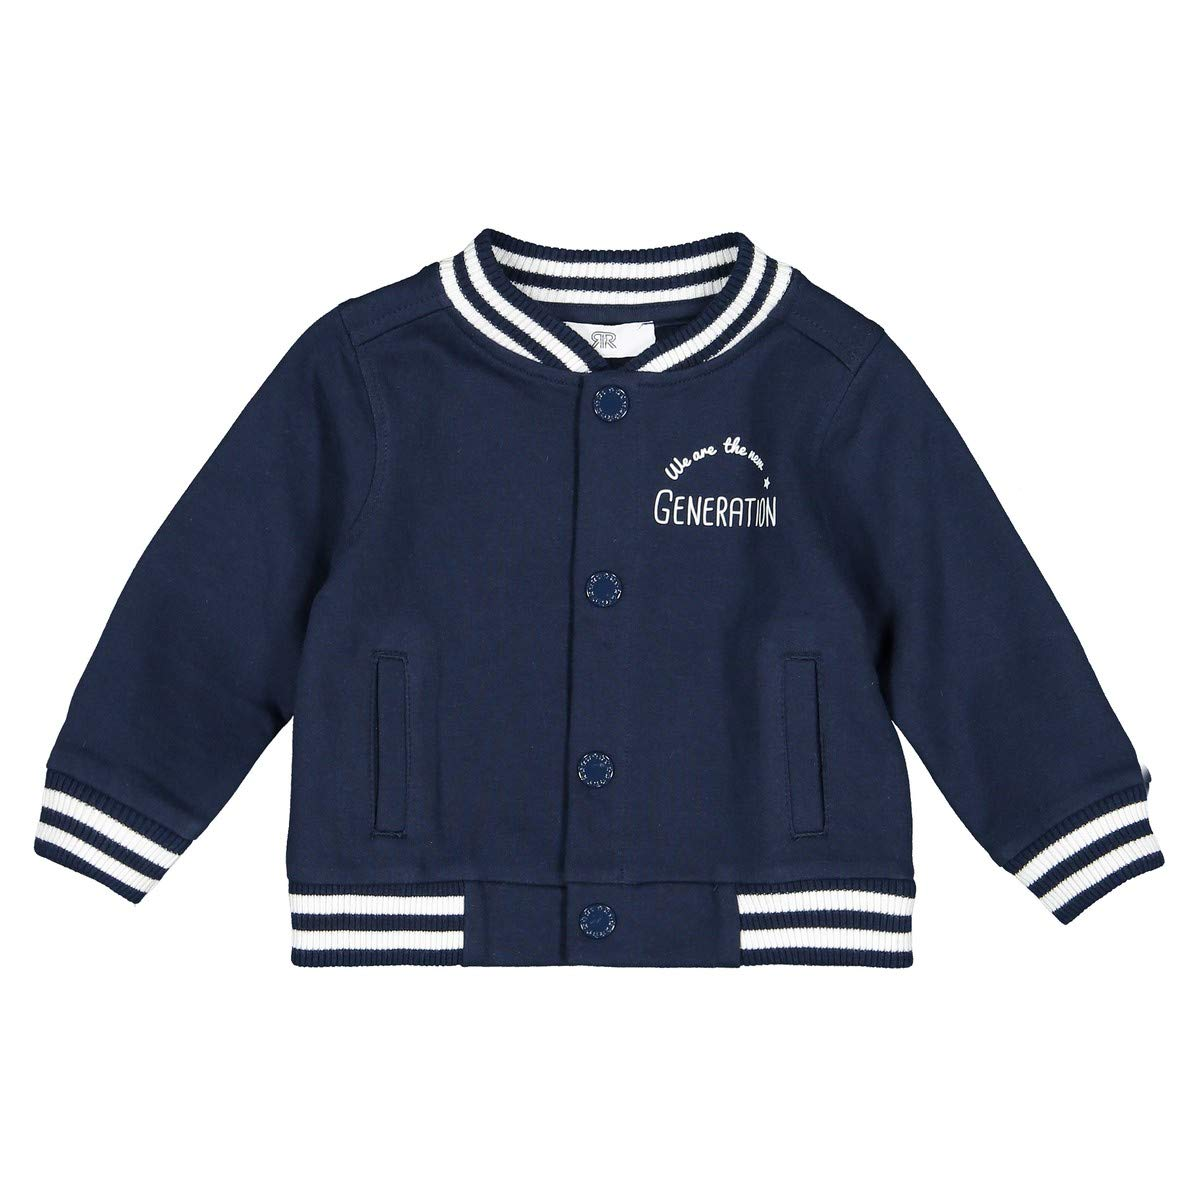 eaf37ab1ec82a La Redoute Collections Boys Bomber Jacket With Back Motif, 3 Months-4  Years: Amazon.com.au: Fashion